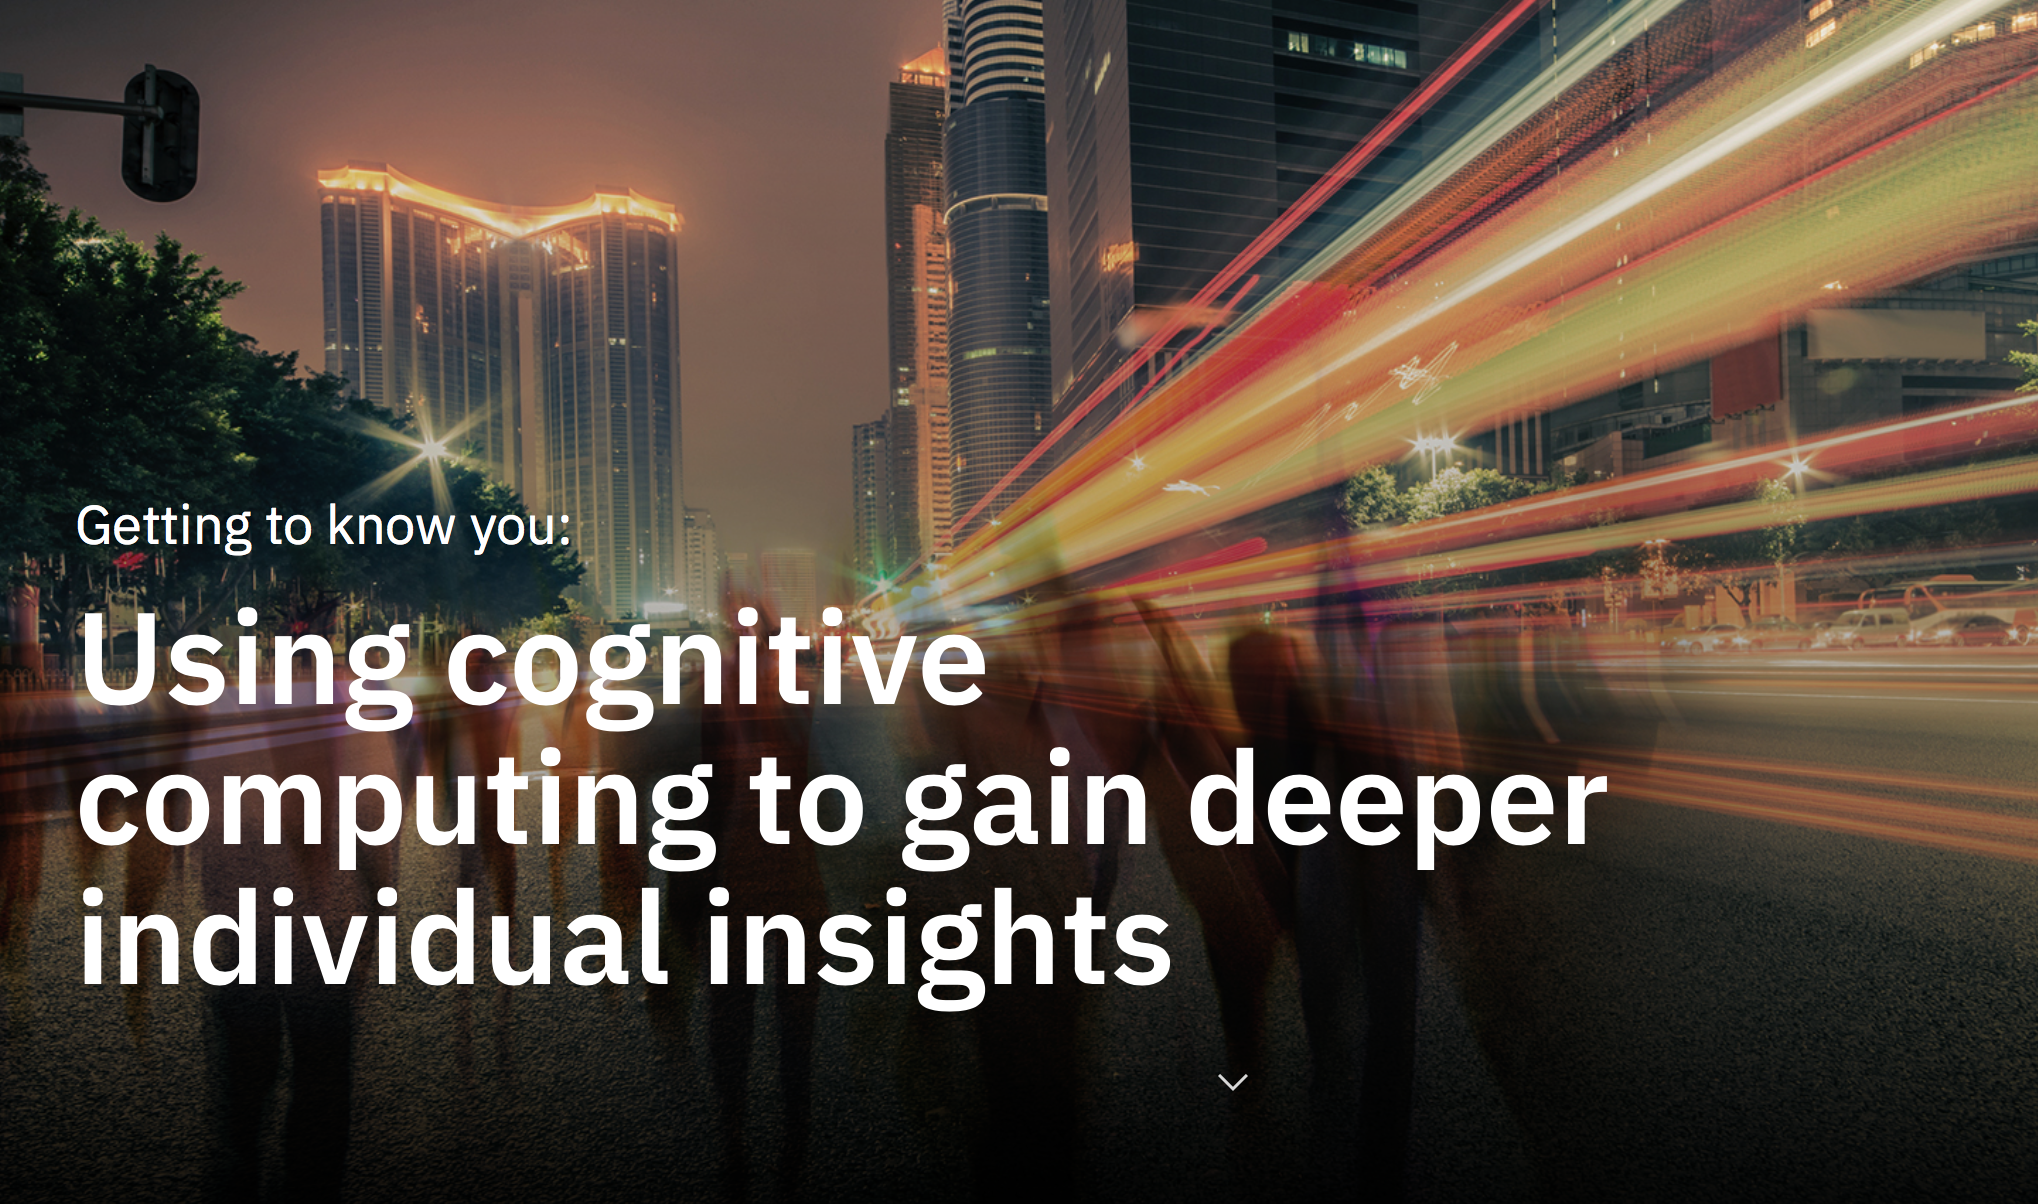 Use the IBM guide to learn how to use cognitive computing to gain deeper individual insights.